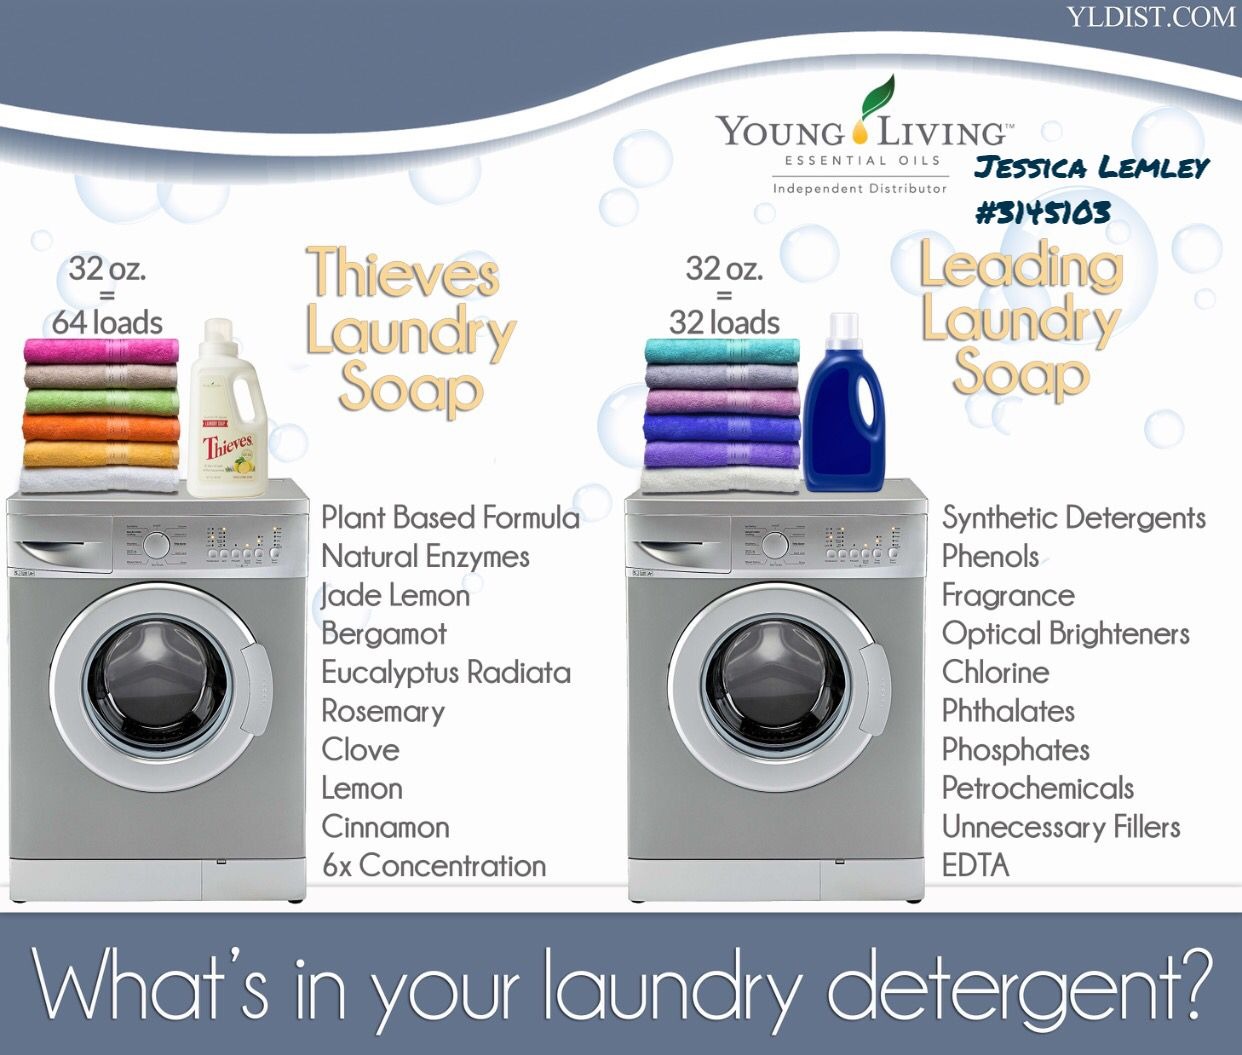 Thieves Laundry Soap So Much Better Than Store Bought Brands